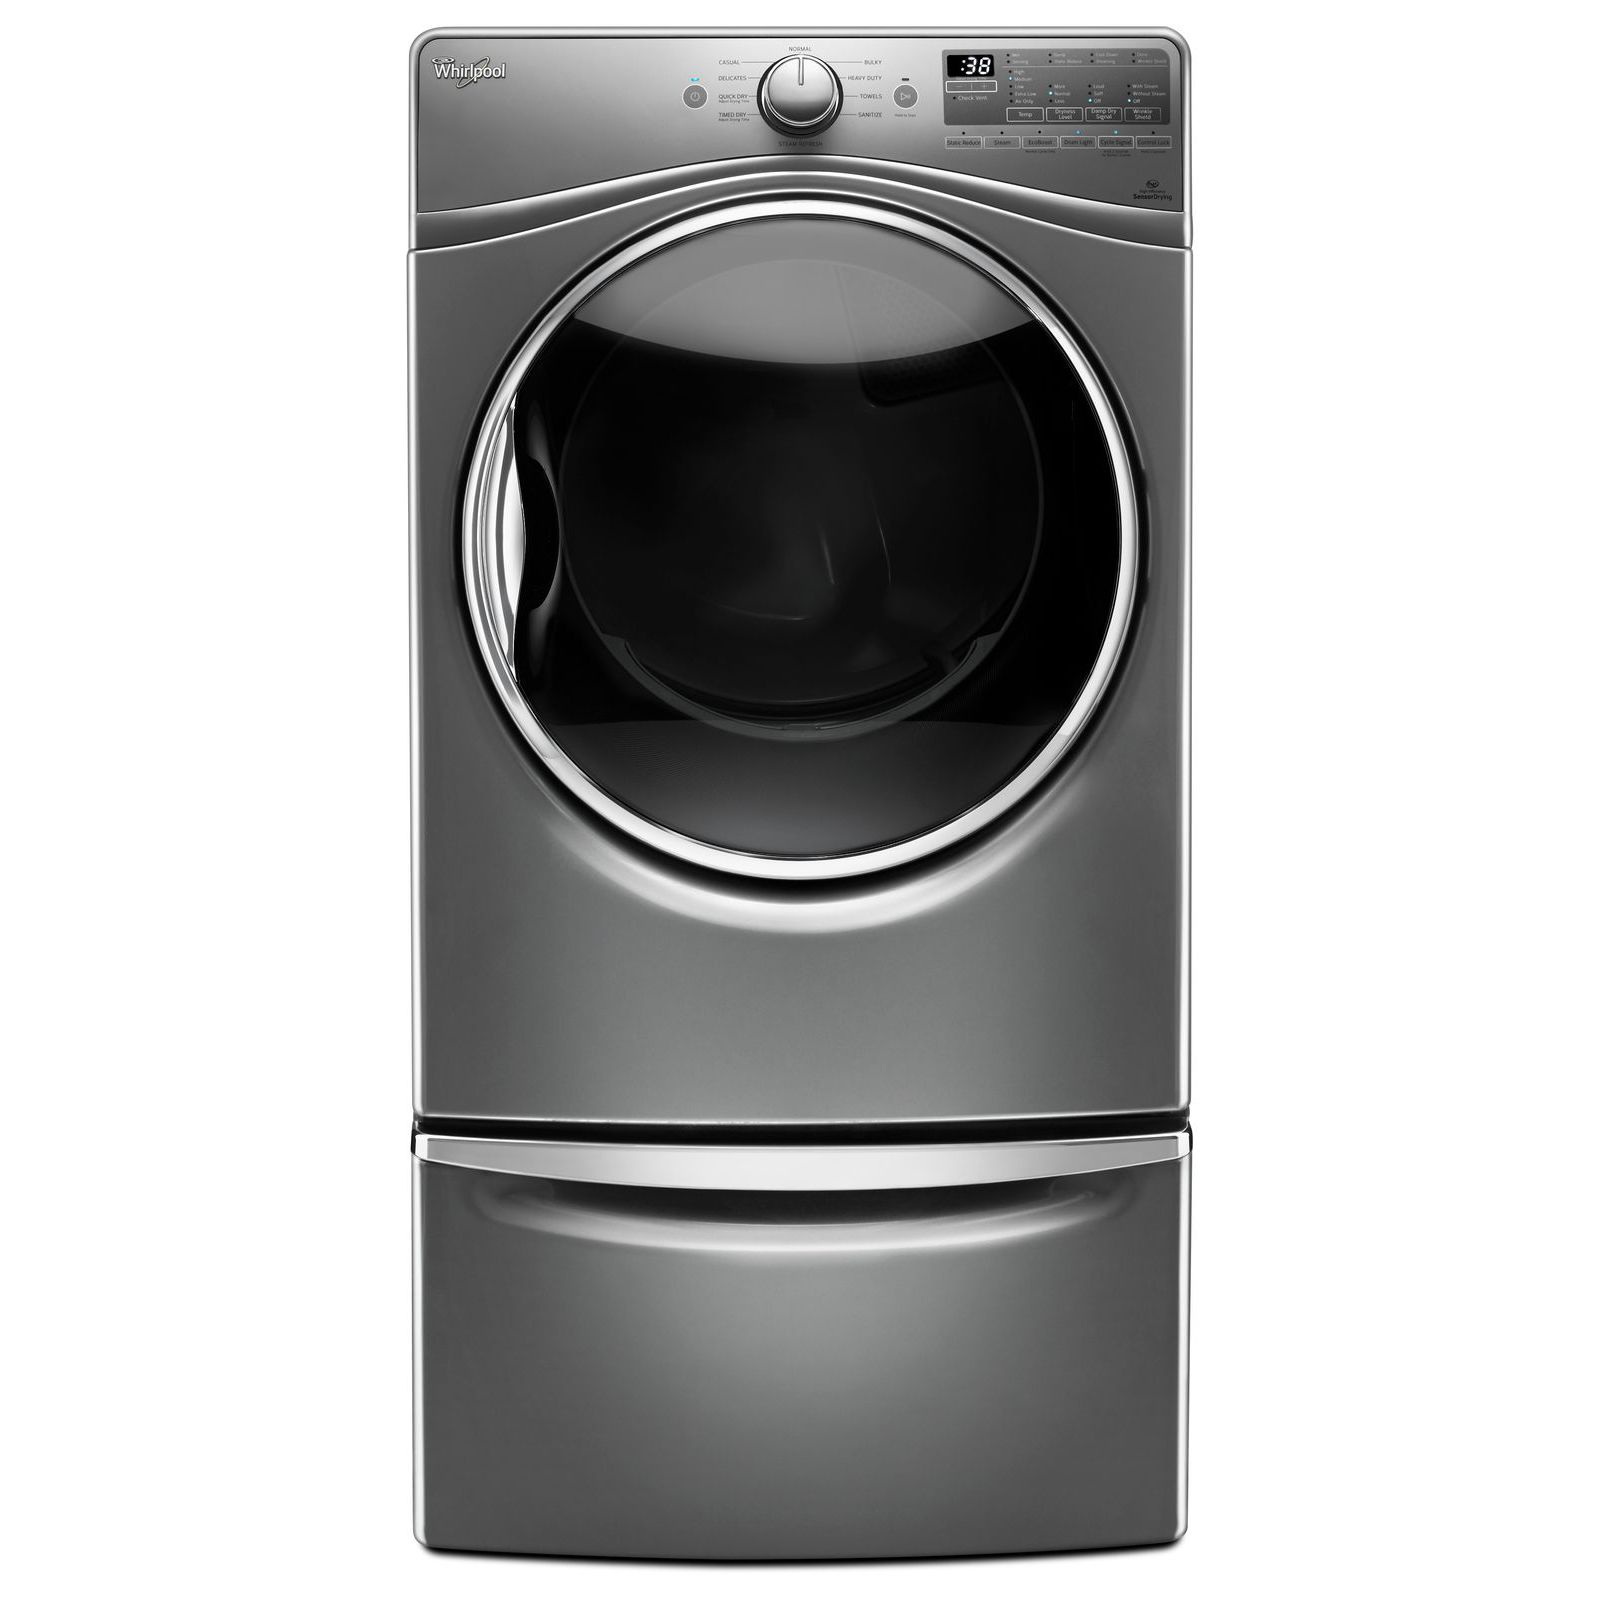 Whirlpool WED92HEFC 7.4 cu. ft. Electric Dryer w/ Advanced Moisture Sensing - Chrome Shadow